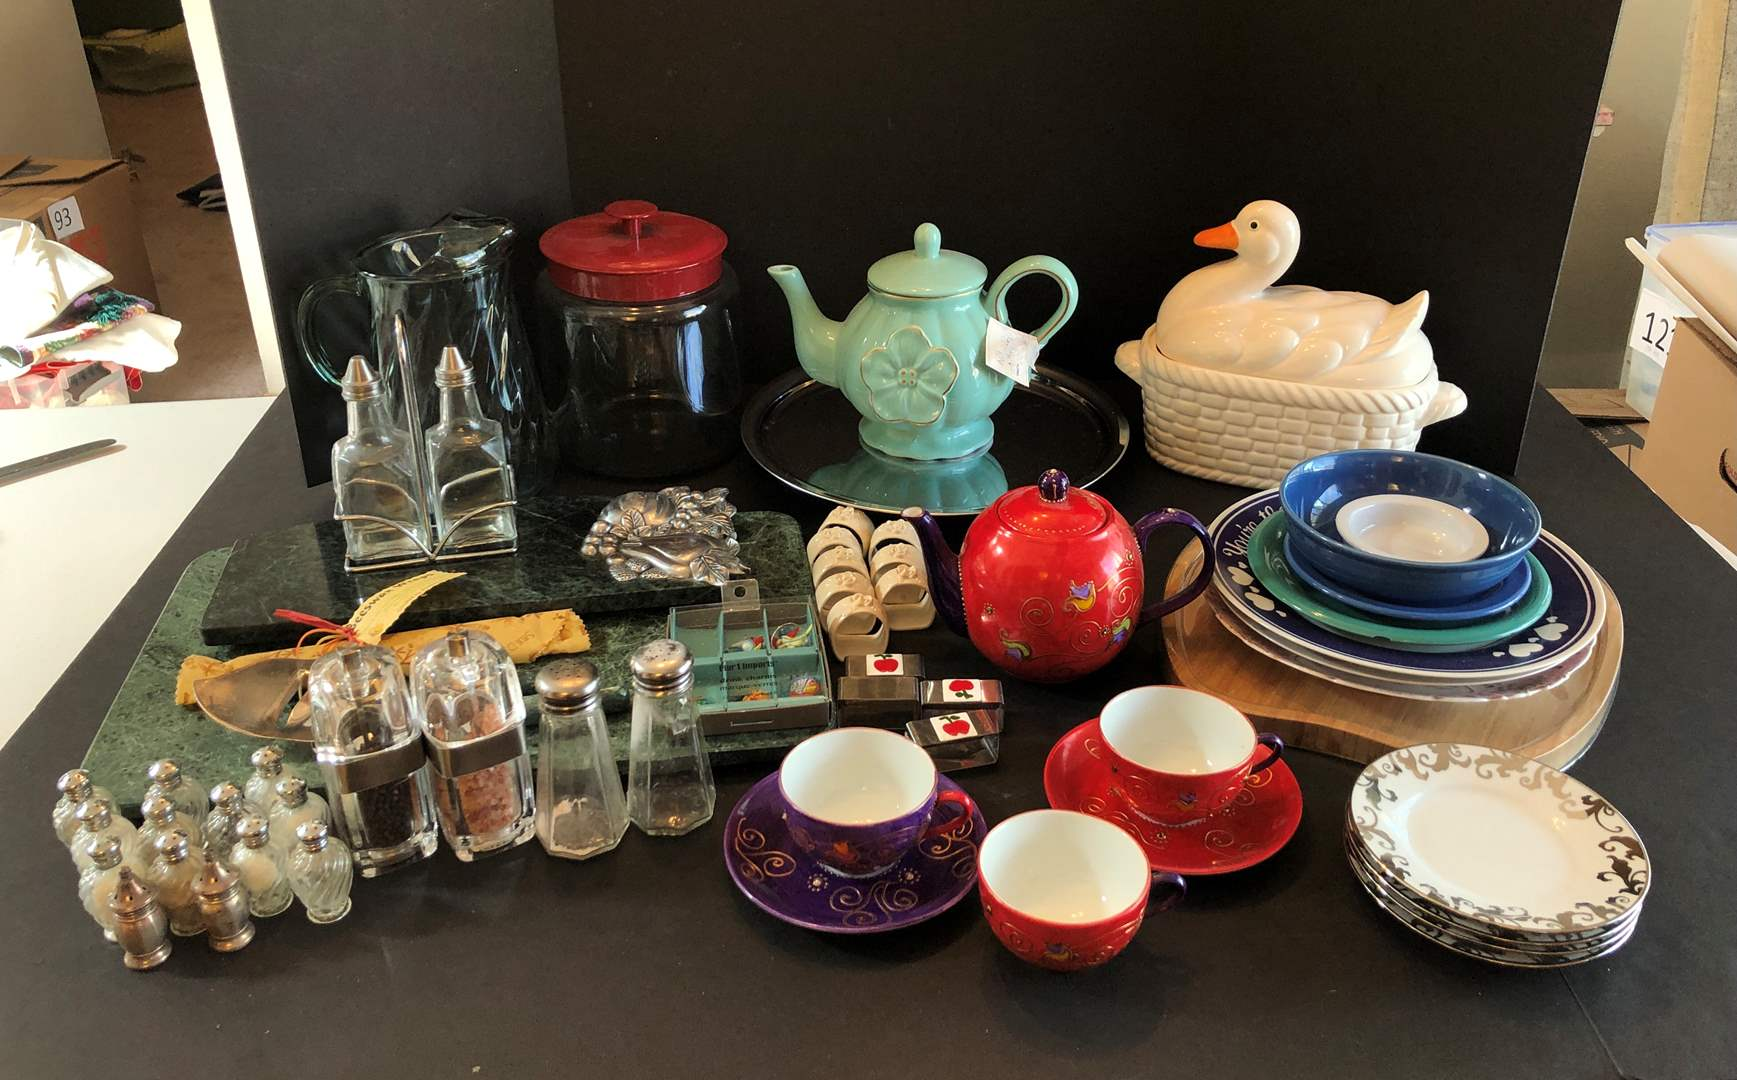 Lot # 141 - Marble Cutting Board, Tea Pots, Salt & Pepper Shakers, Misc. Plates & More..  (main image)